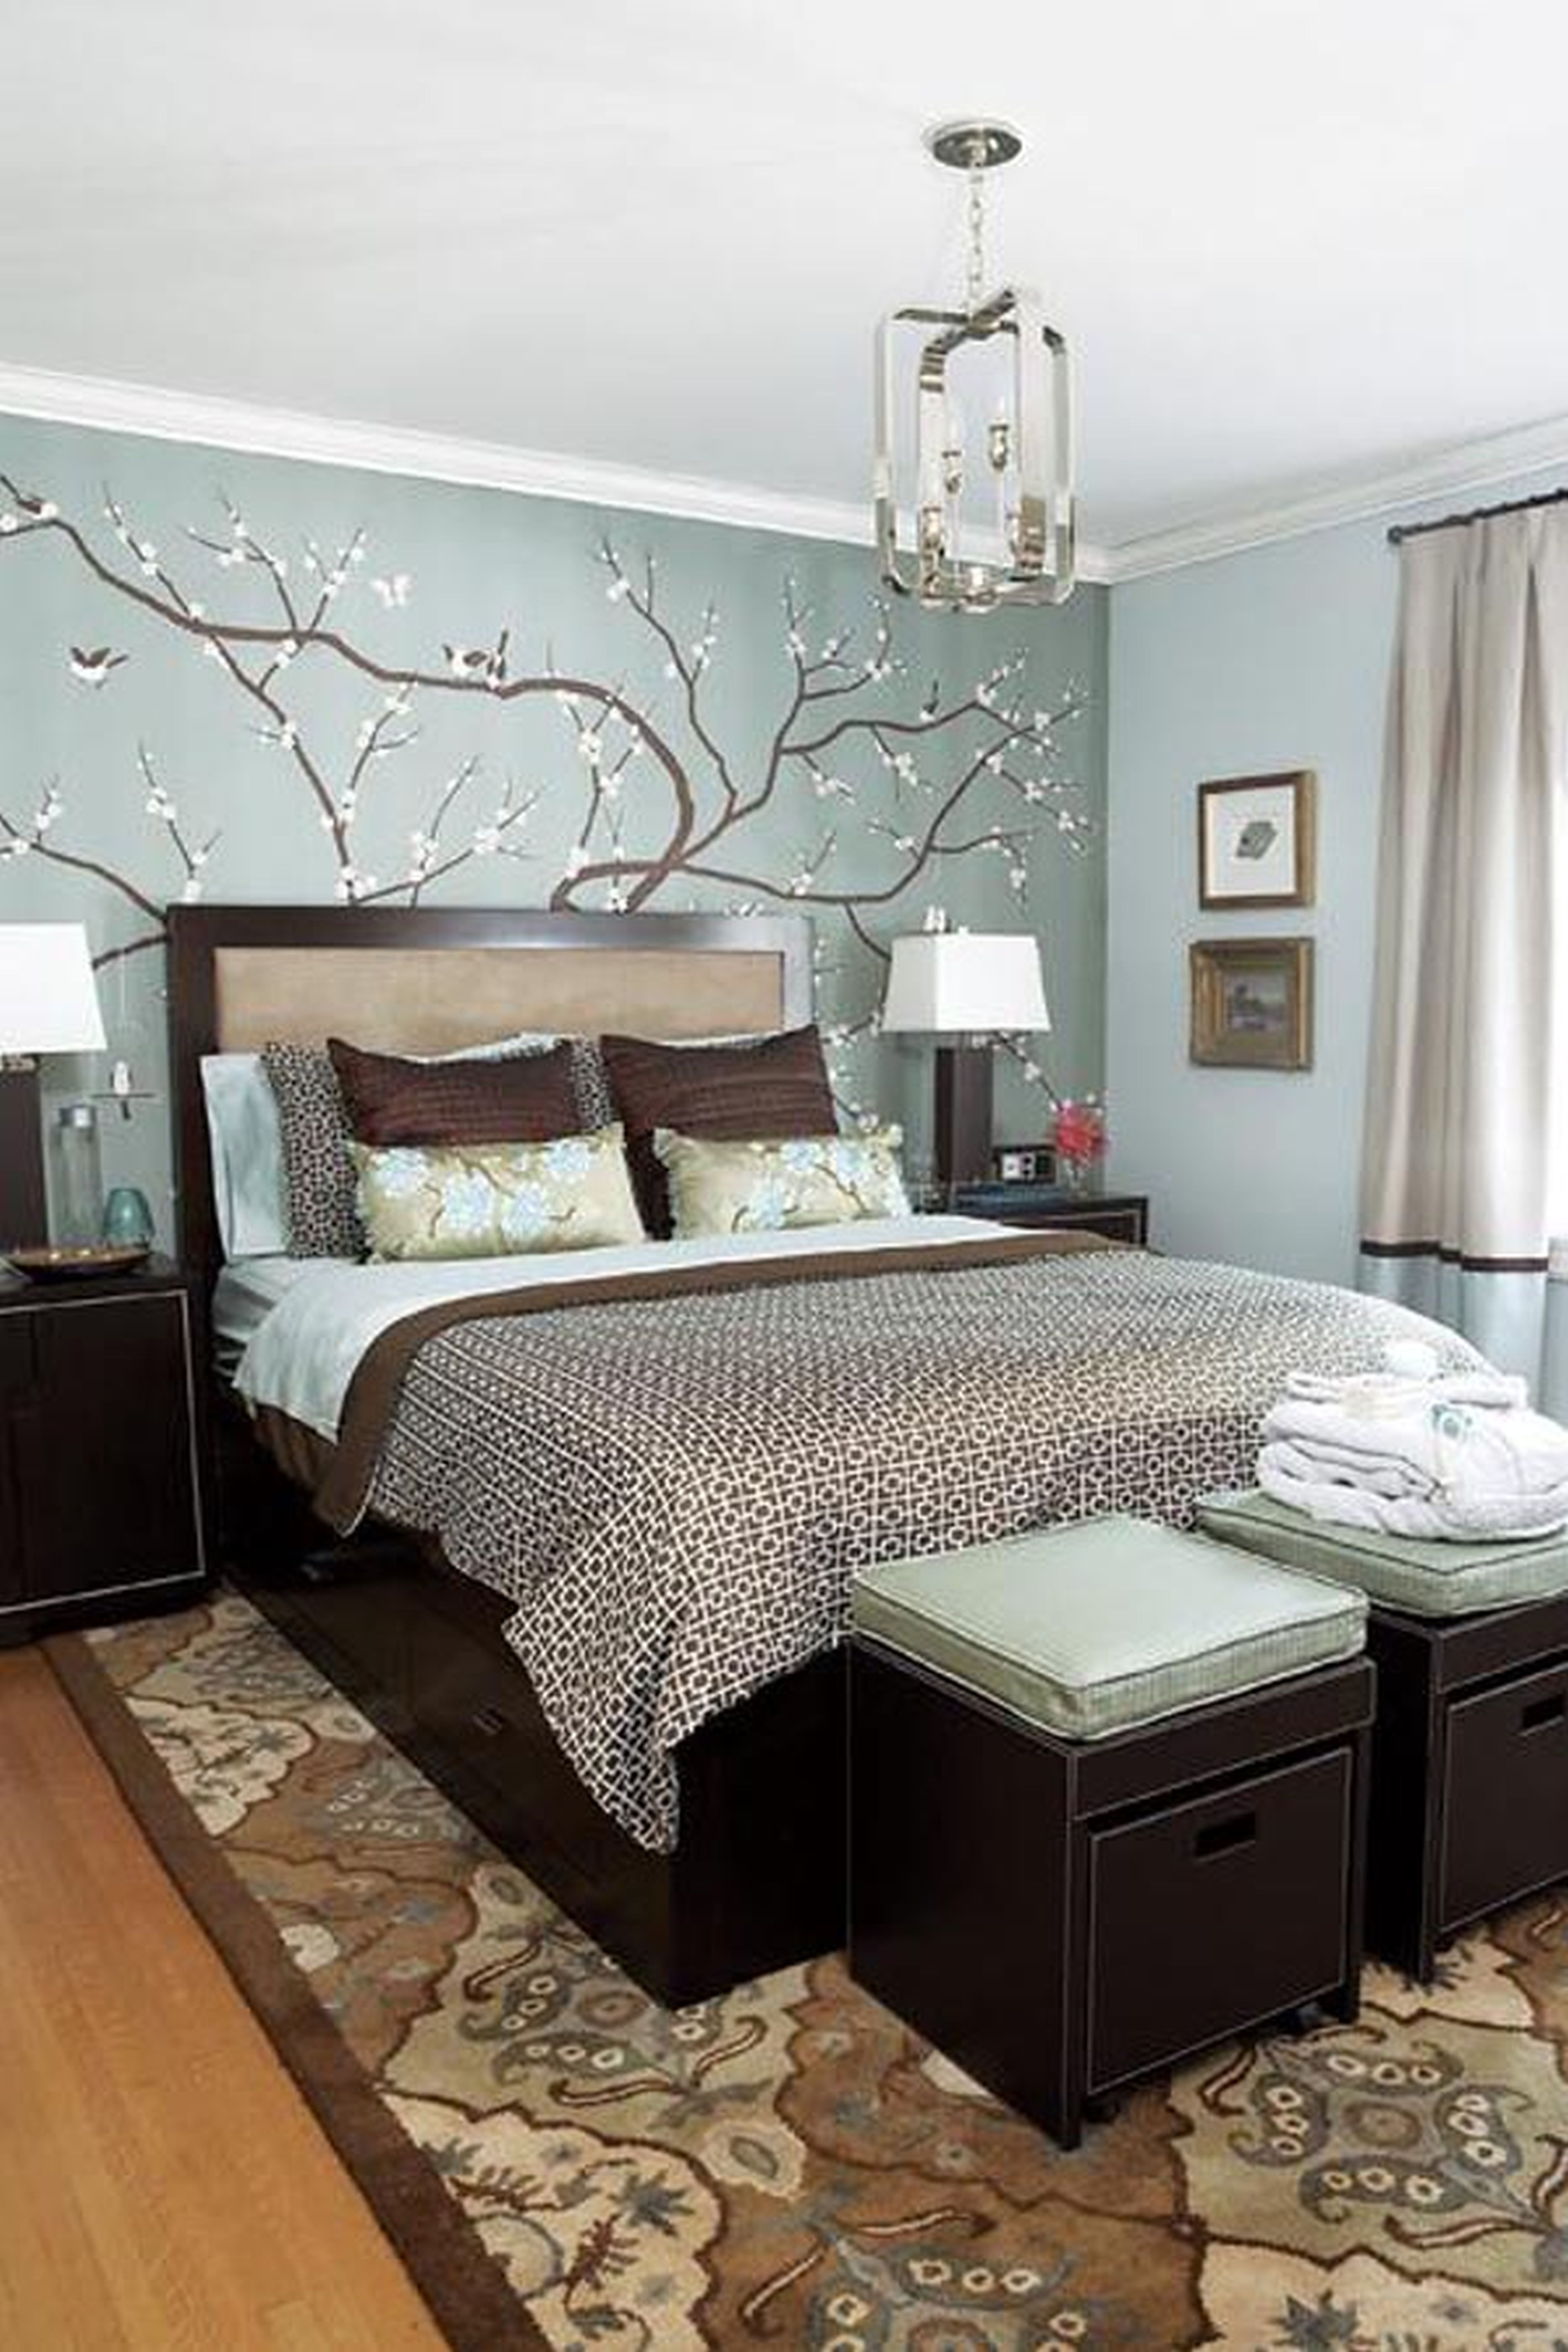 bedroom charming girls bedroom eas scheme heavenly small bedroom rh pinterest com blue and brown master bedroom decorating ideas